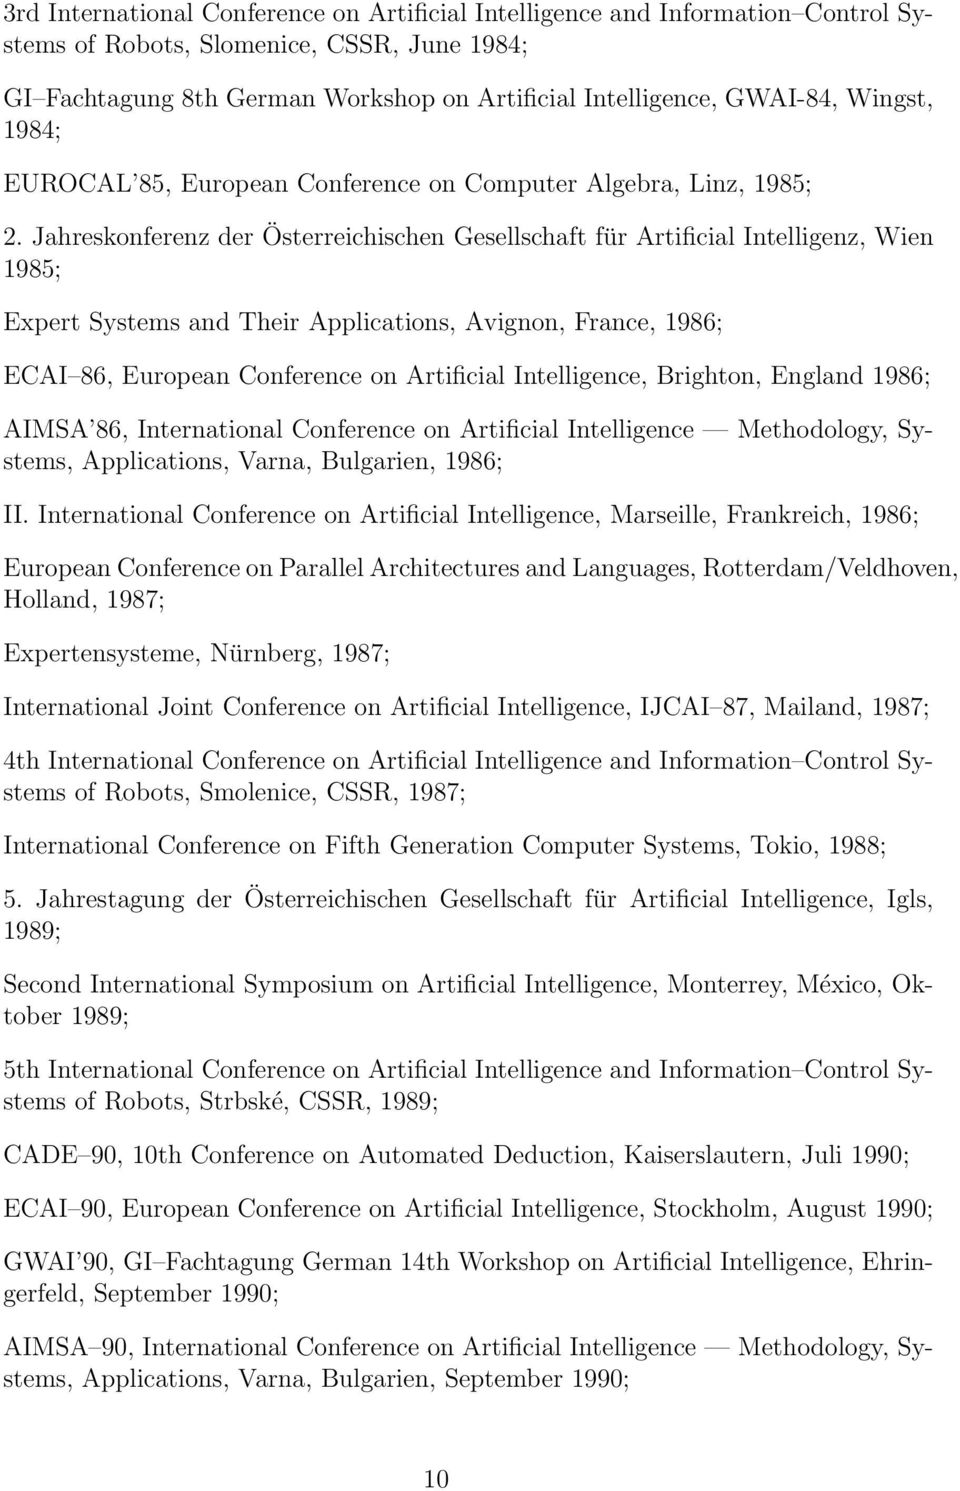 Jahreskonferenz der Österreichischen Gesellschaft für Artificial Intelligenz, Wien 1985; Expert Systems and Their Applications, Avignon, France, 1986; ECAI 86, European Conference on Artificial